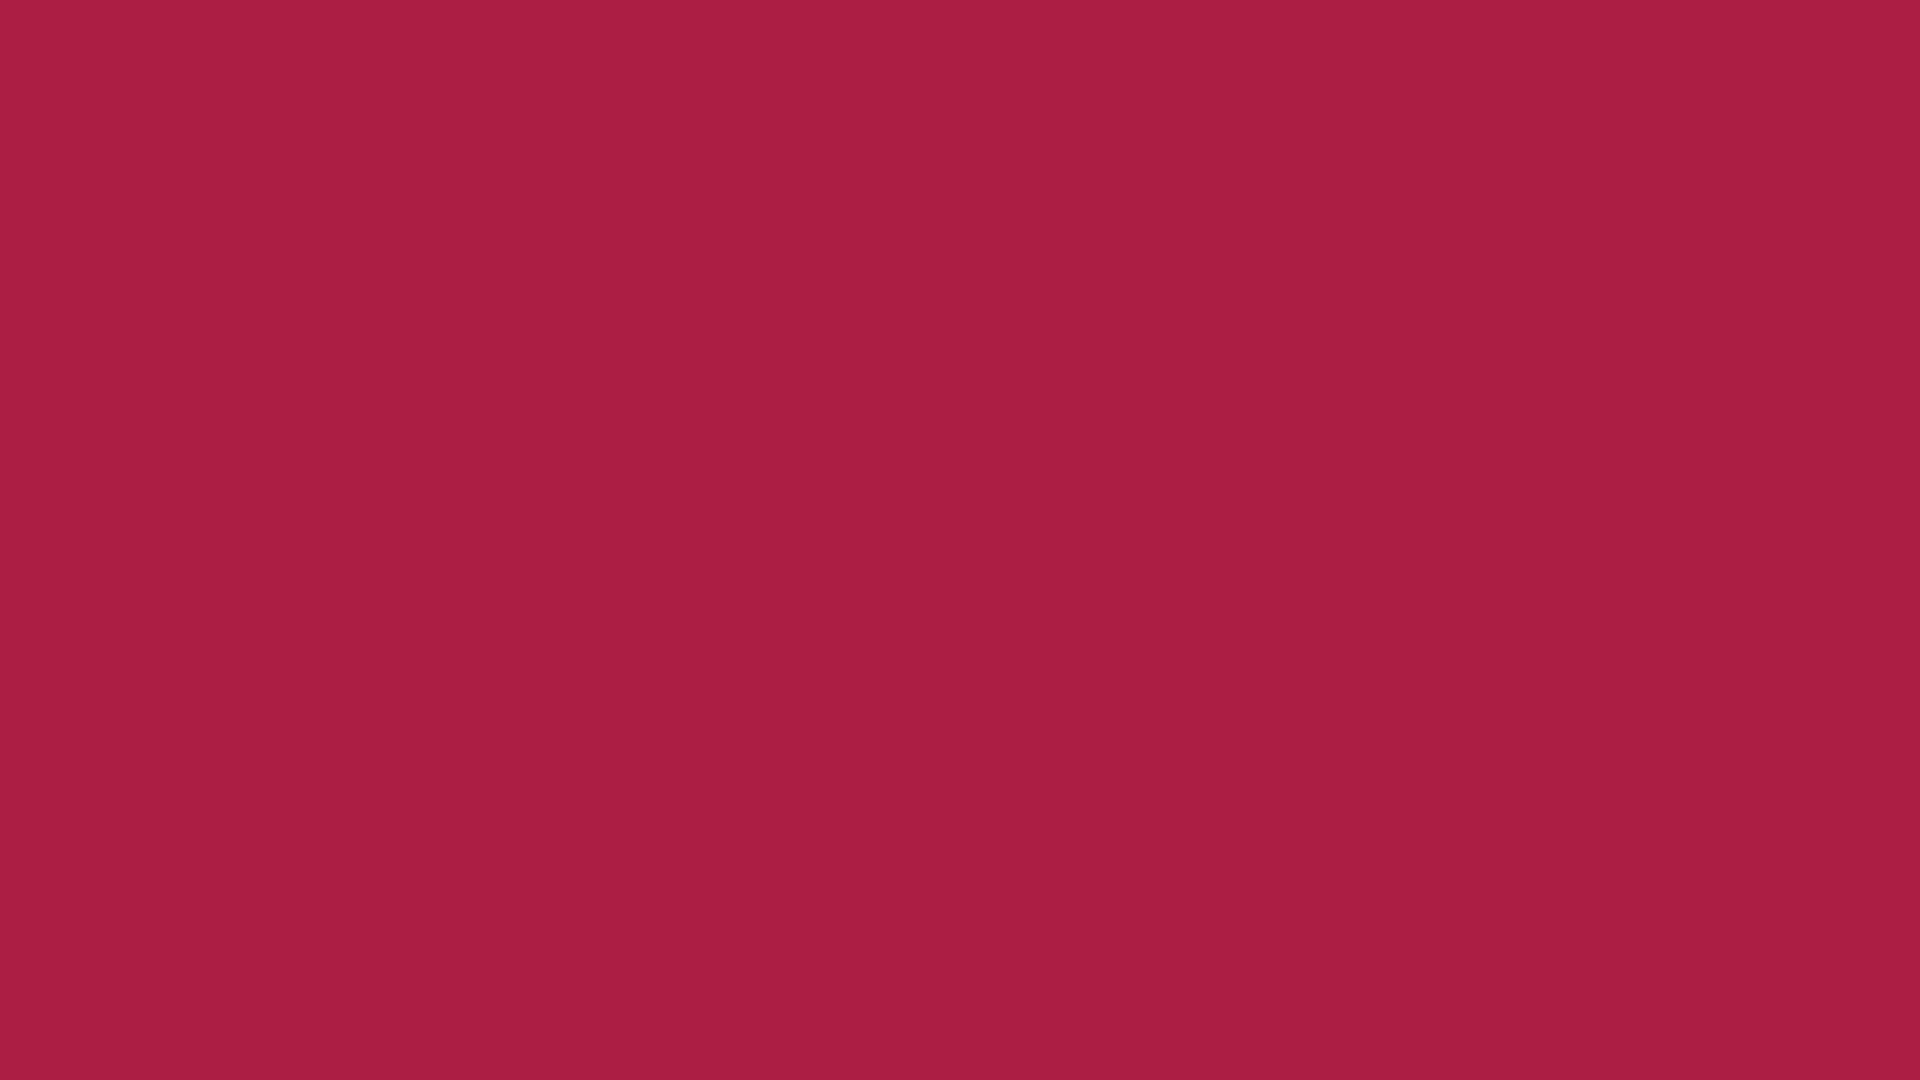 French Wine Solid Color Background